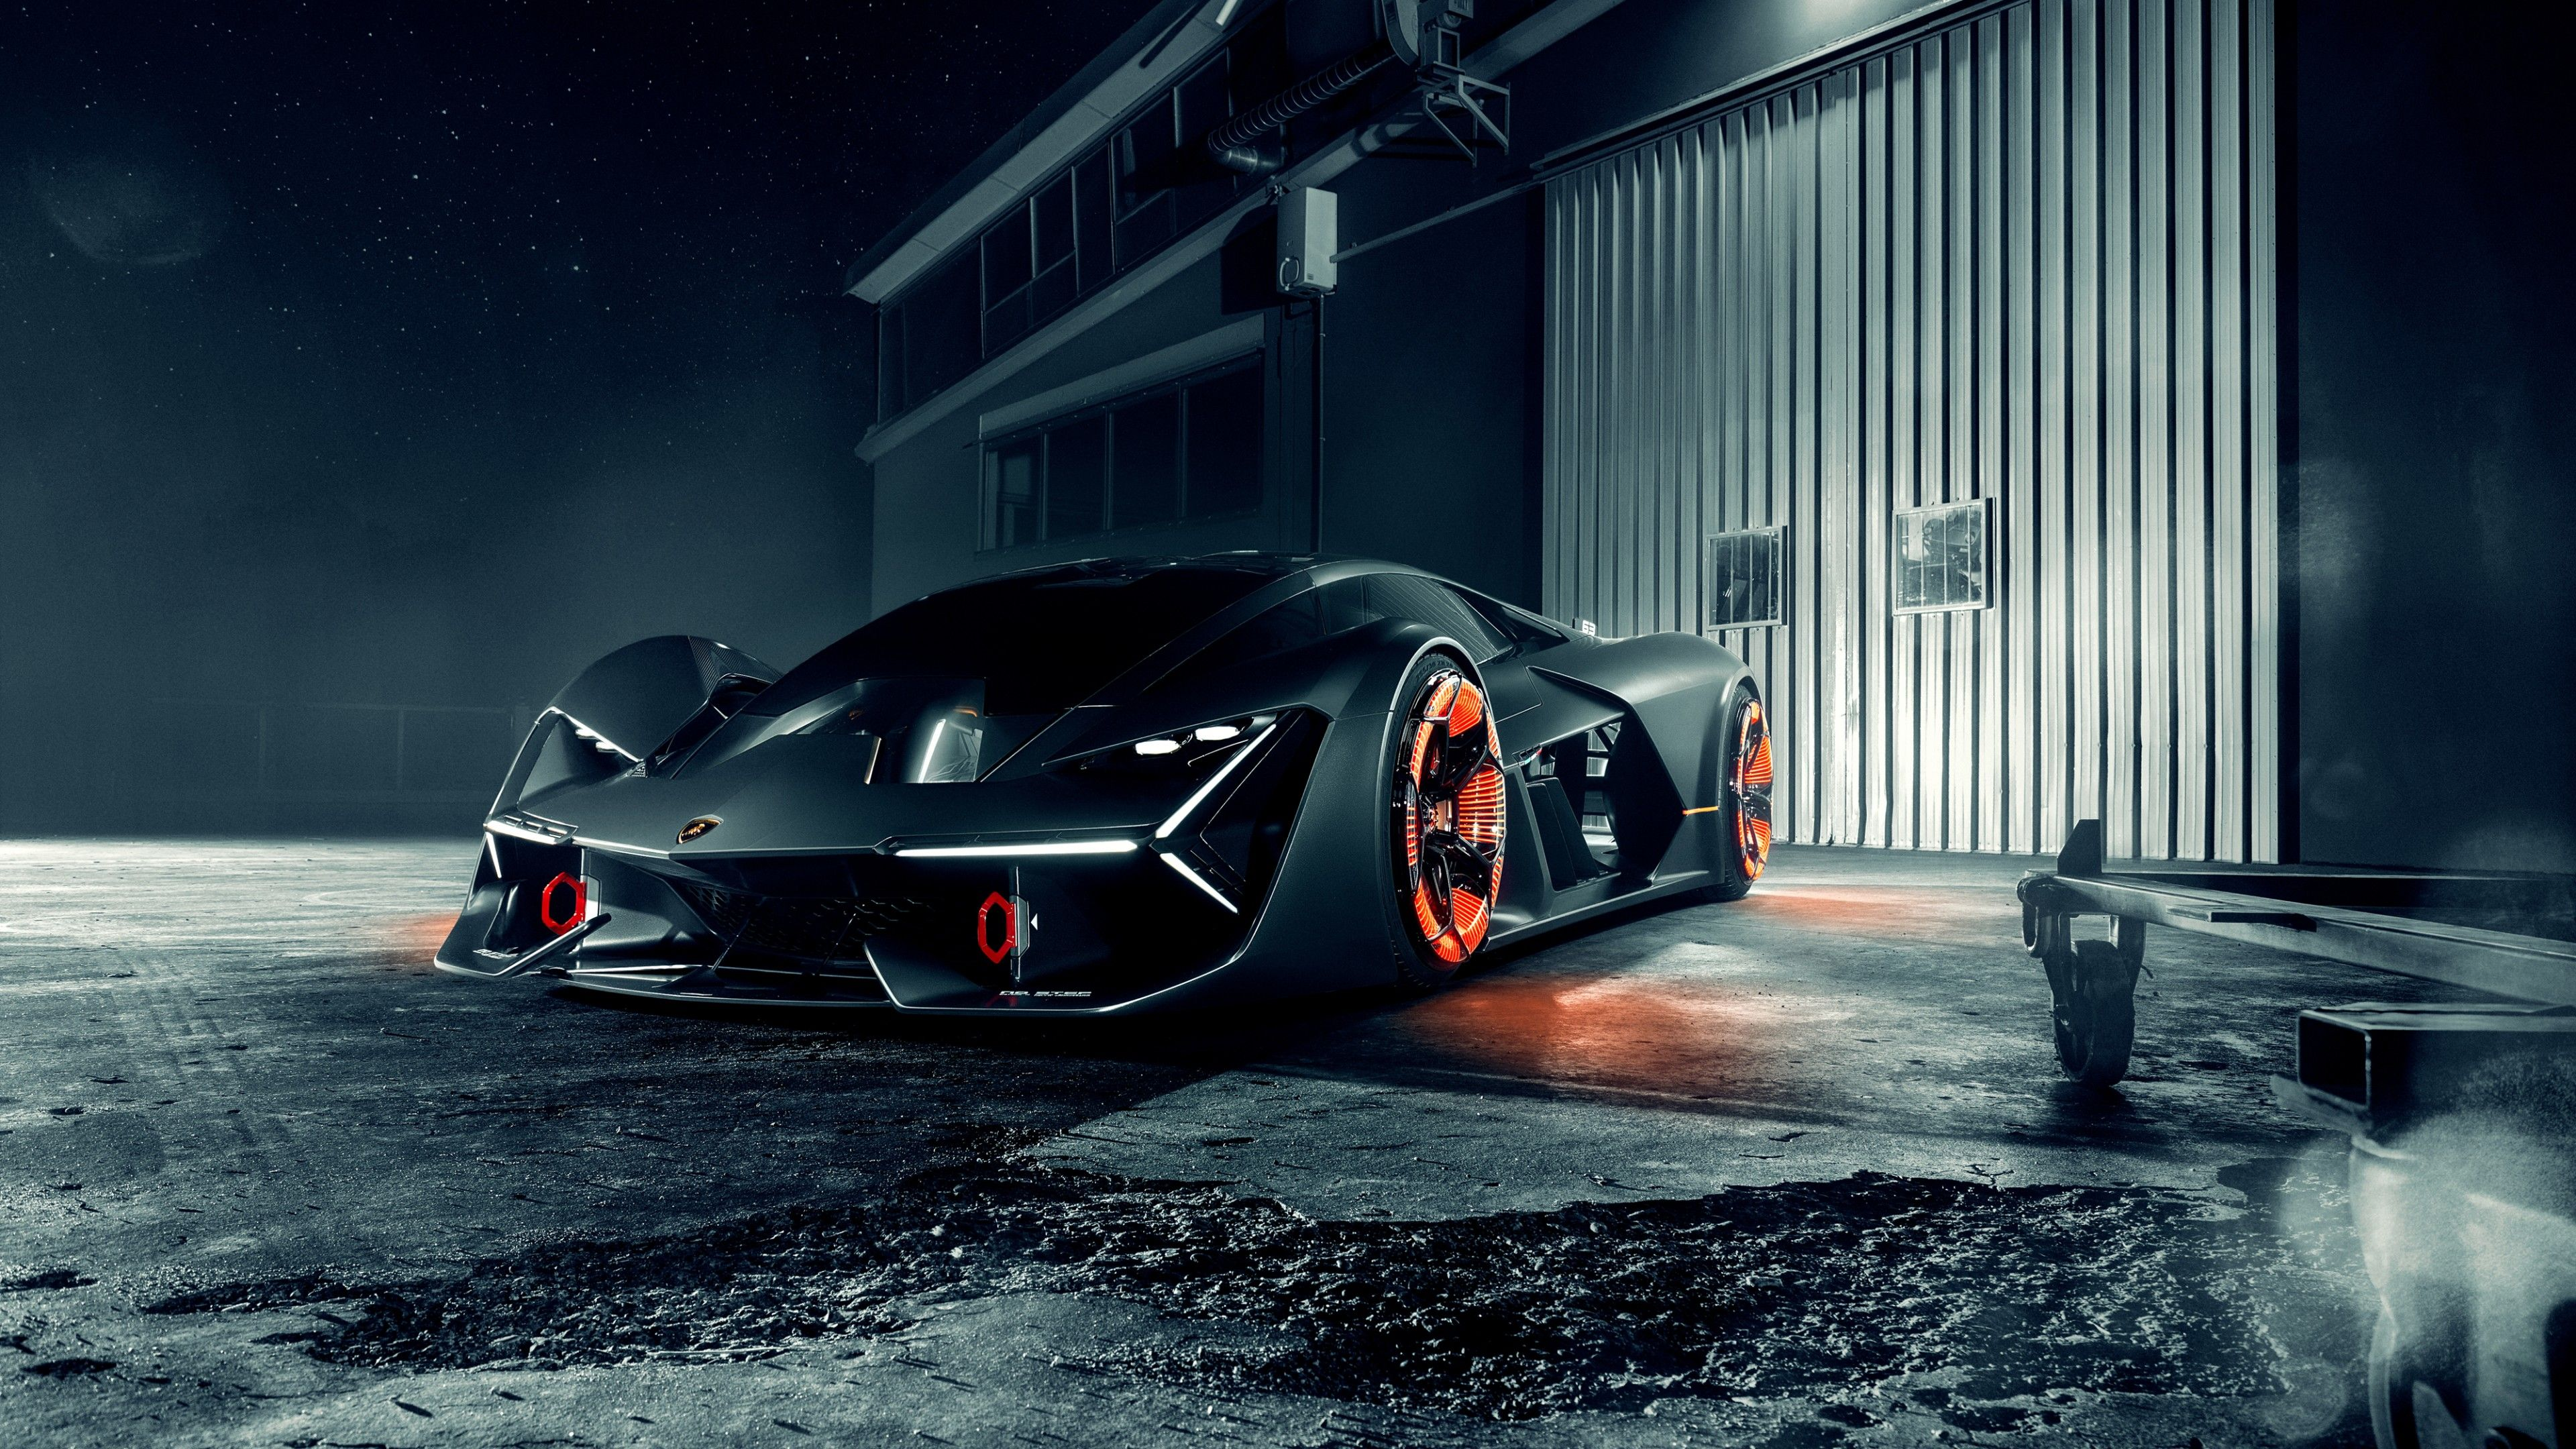 Stunning Lamborghini Terzo Millennio Car Hd Wallpaper 4k Cars